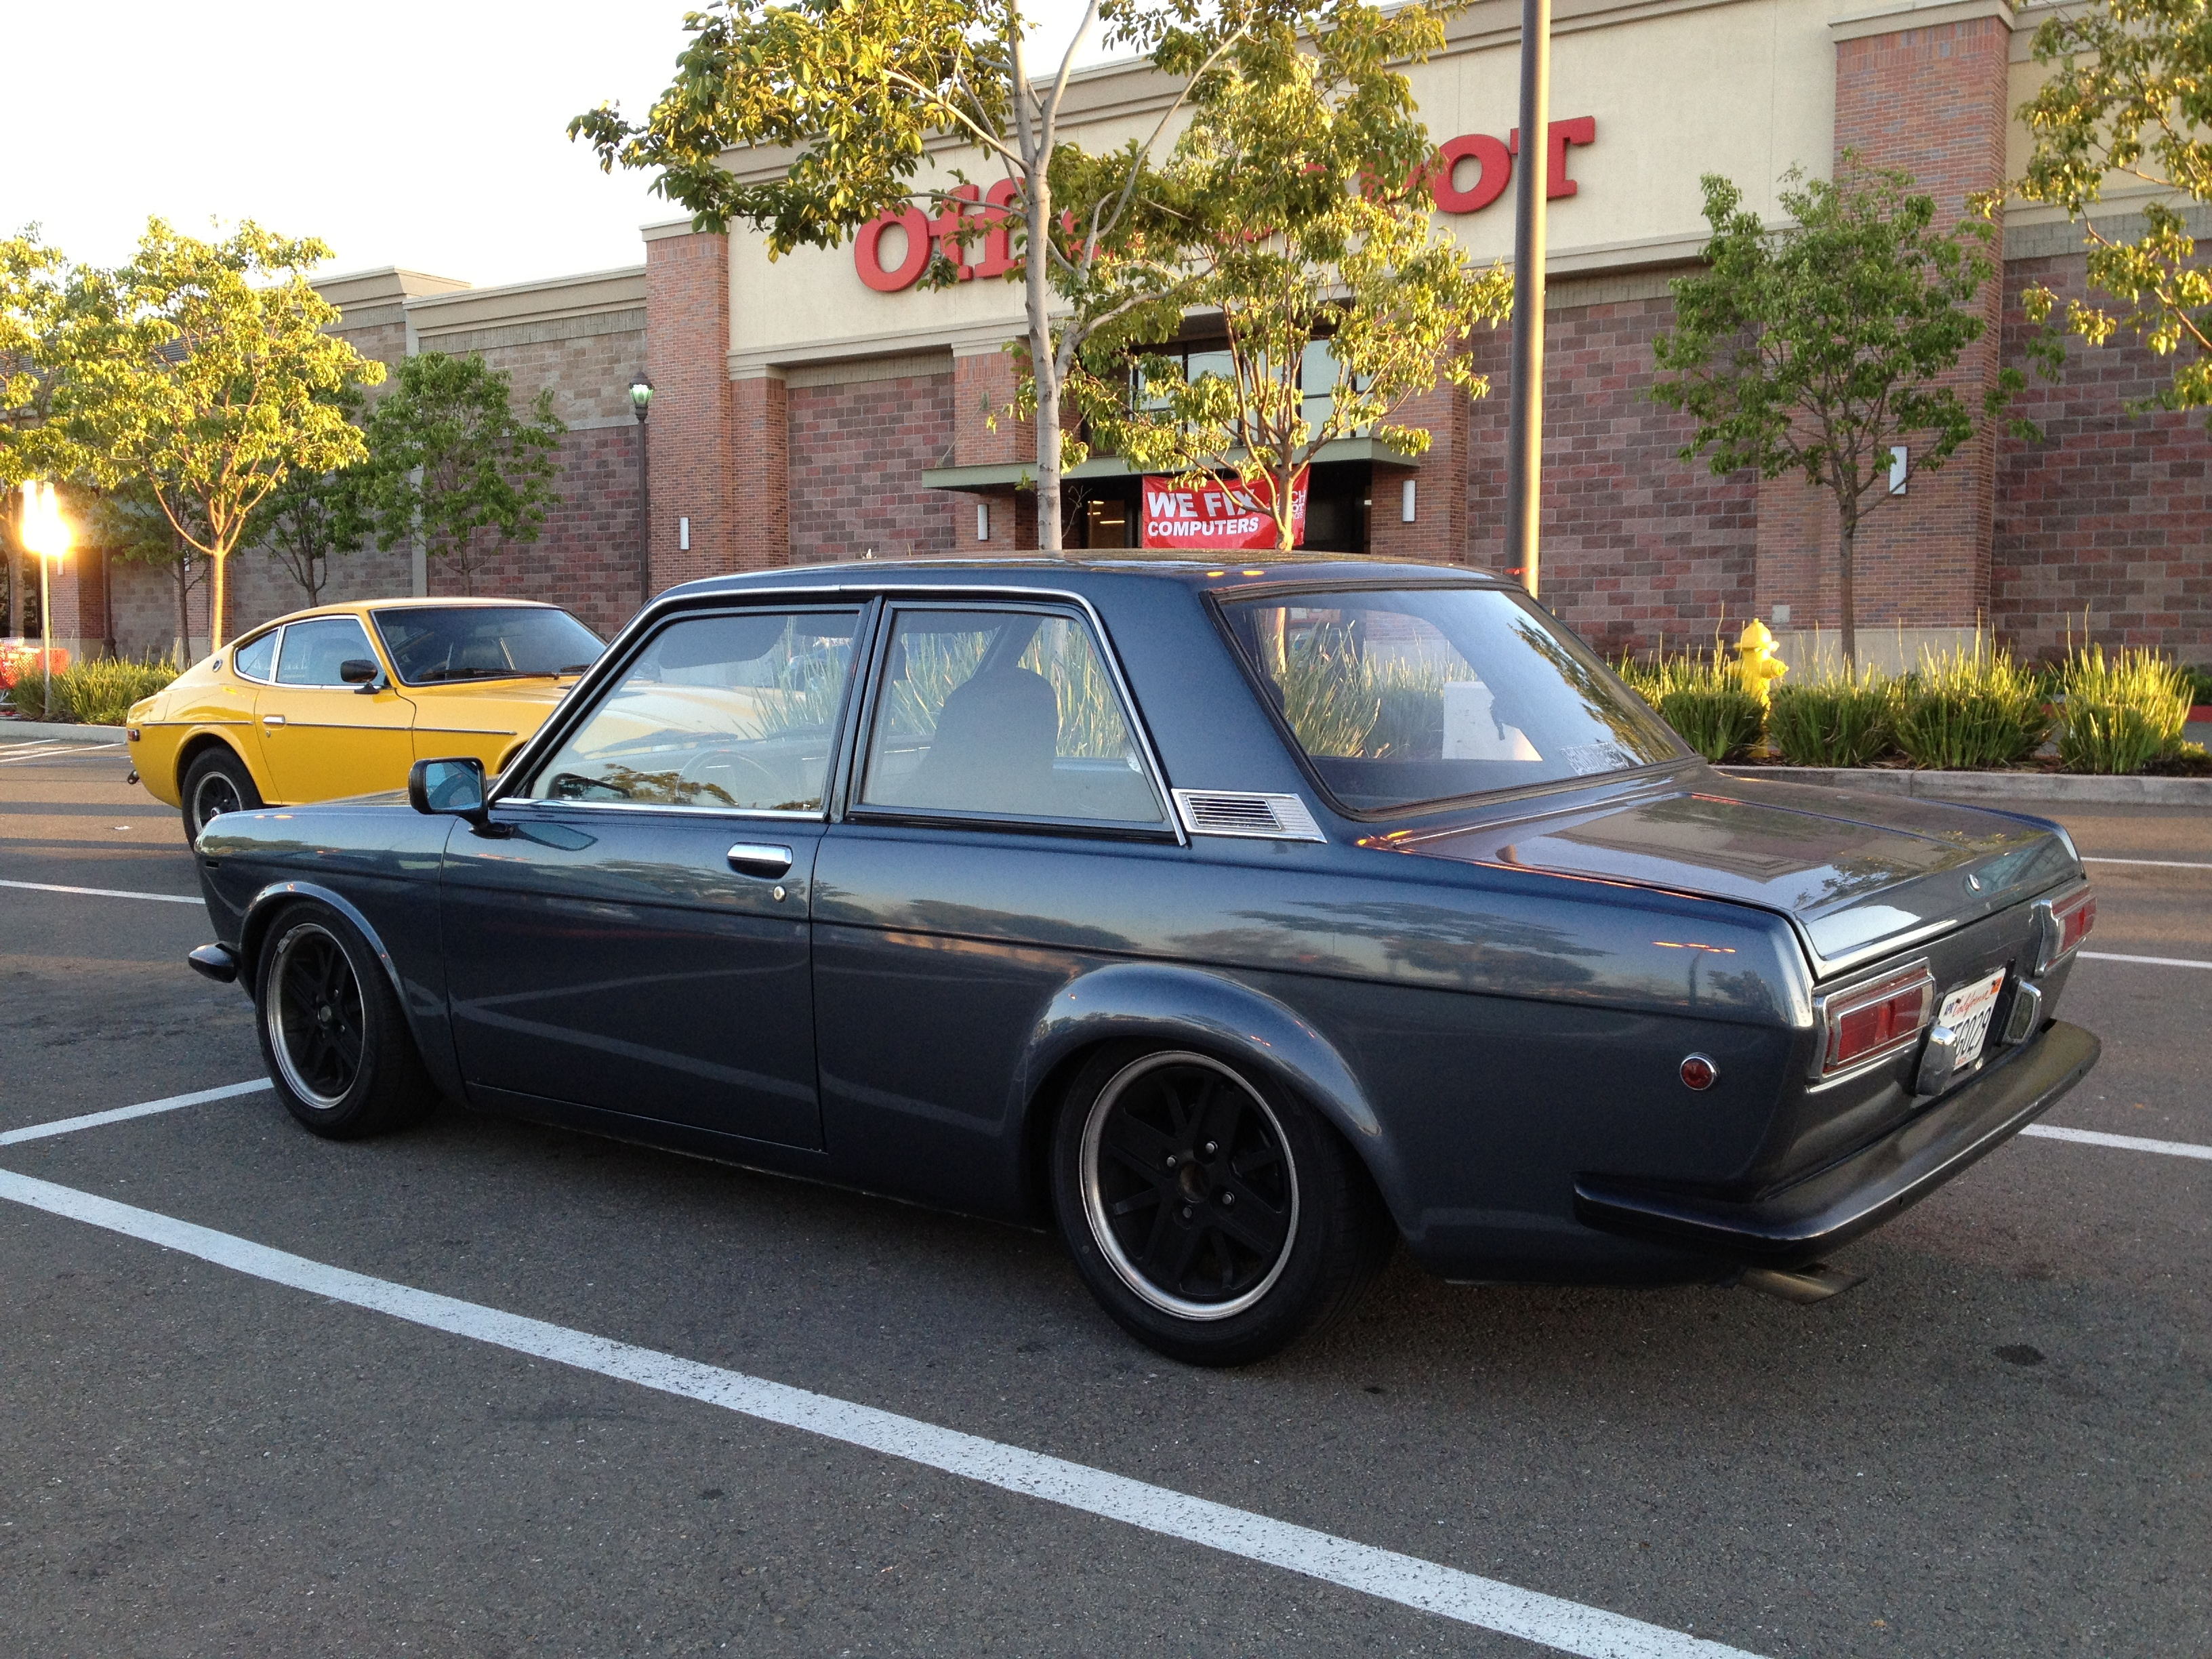 Datsun 510 for sale craigslist share the knownledge